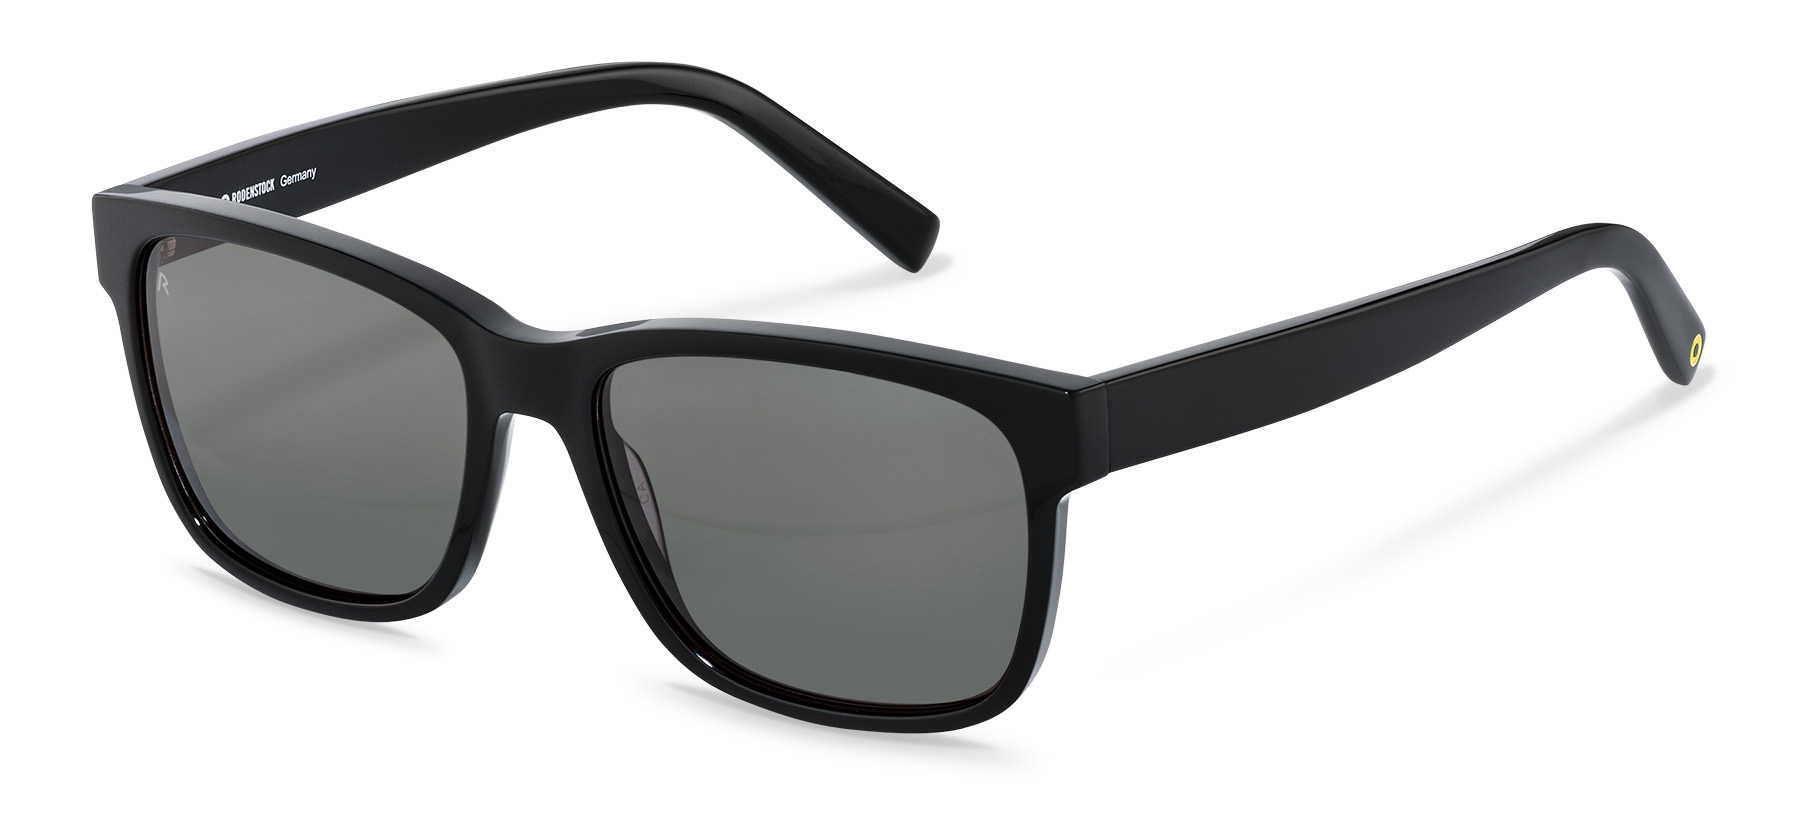 Rodenstock Capsule Collection-Sunglasses-RR339-black